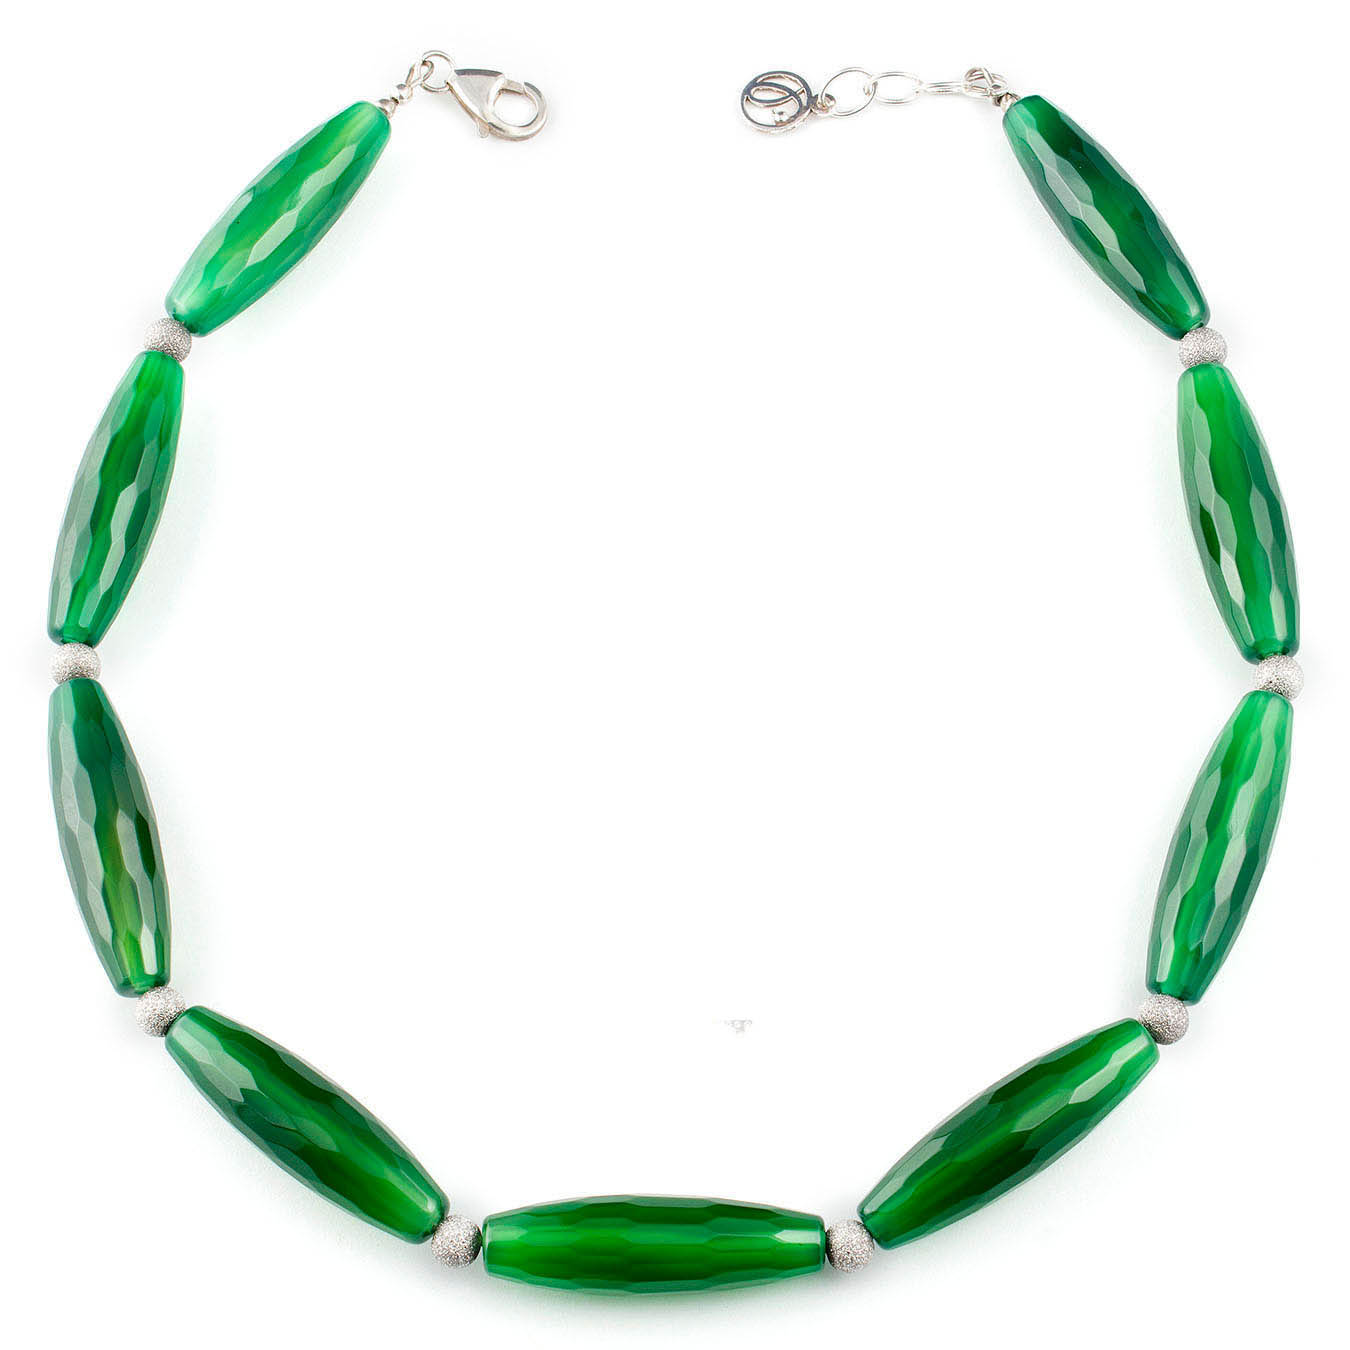 Statement necklace set made with green agate and 925 silver beads